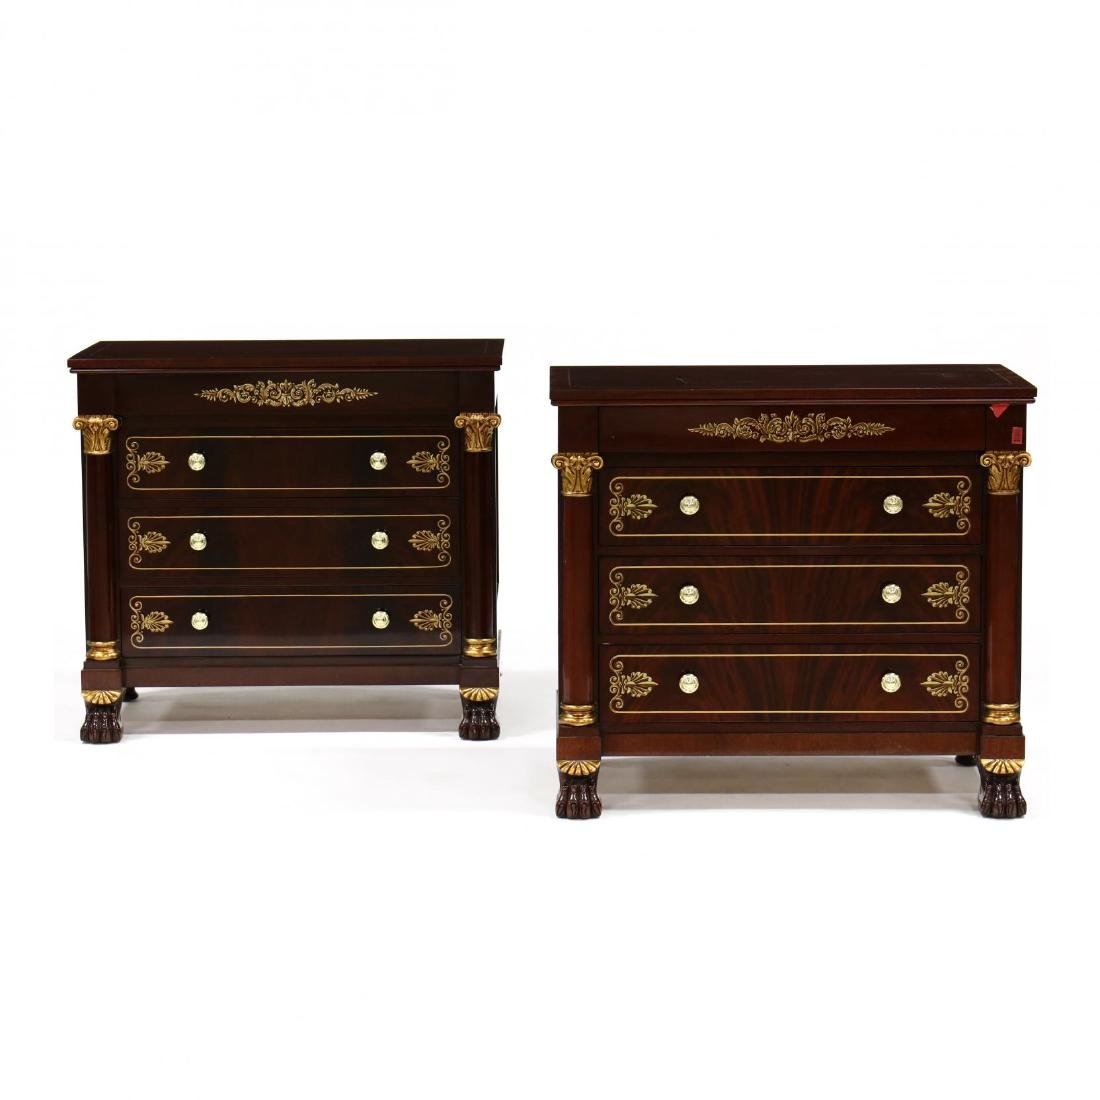 Kindel Masterworks, Winterthur Adaptation Pair of Gilt